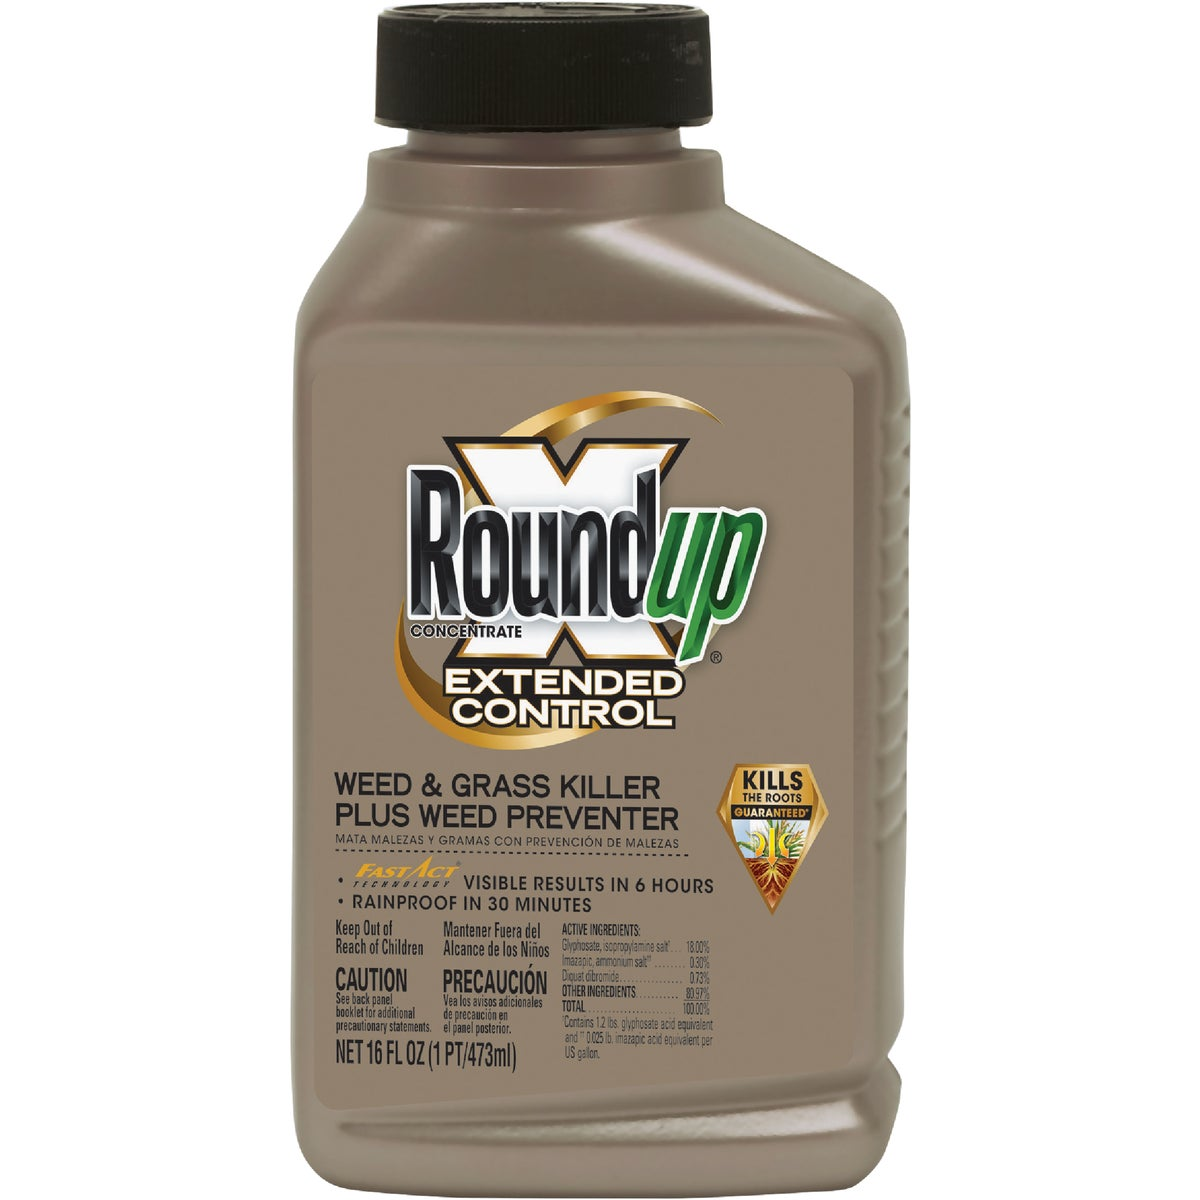 PT CON EXT CNTRL ROUNDUP - 5720010 by Scotts Company